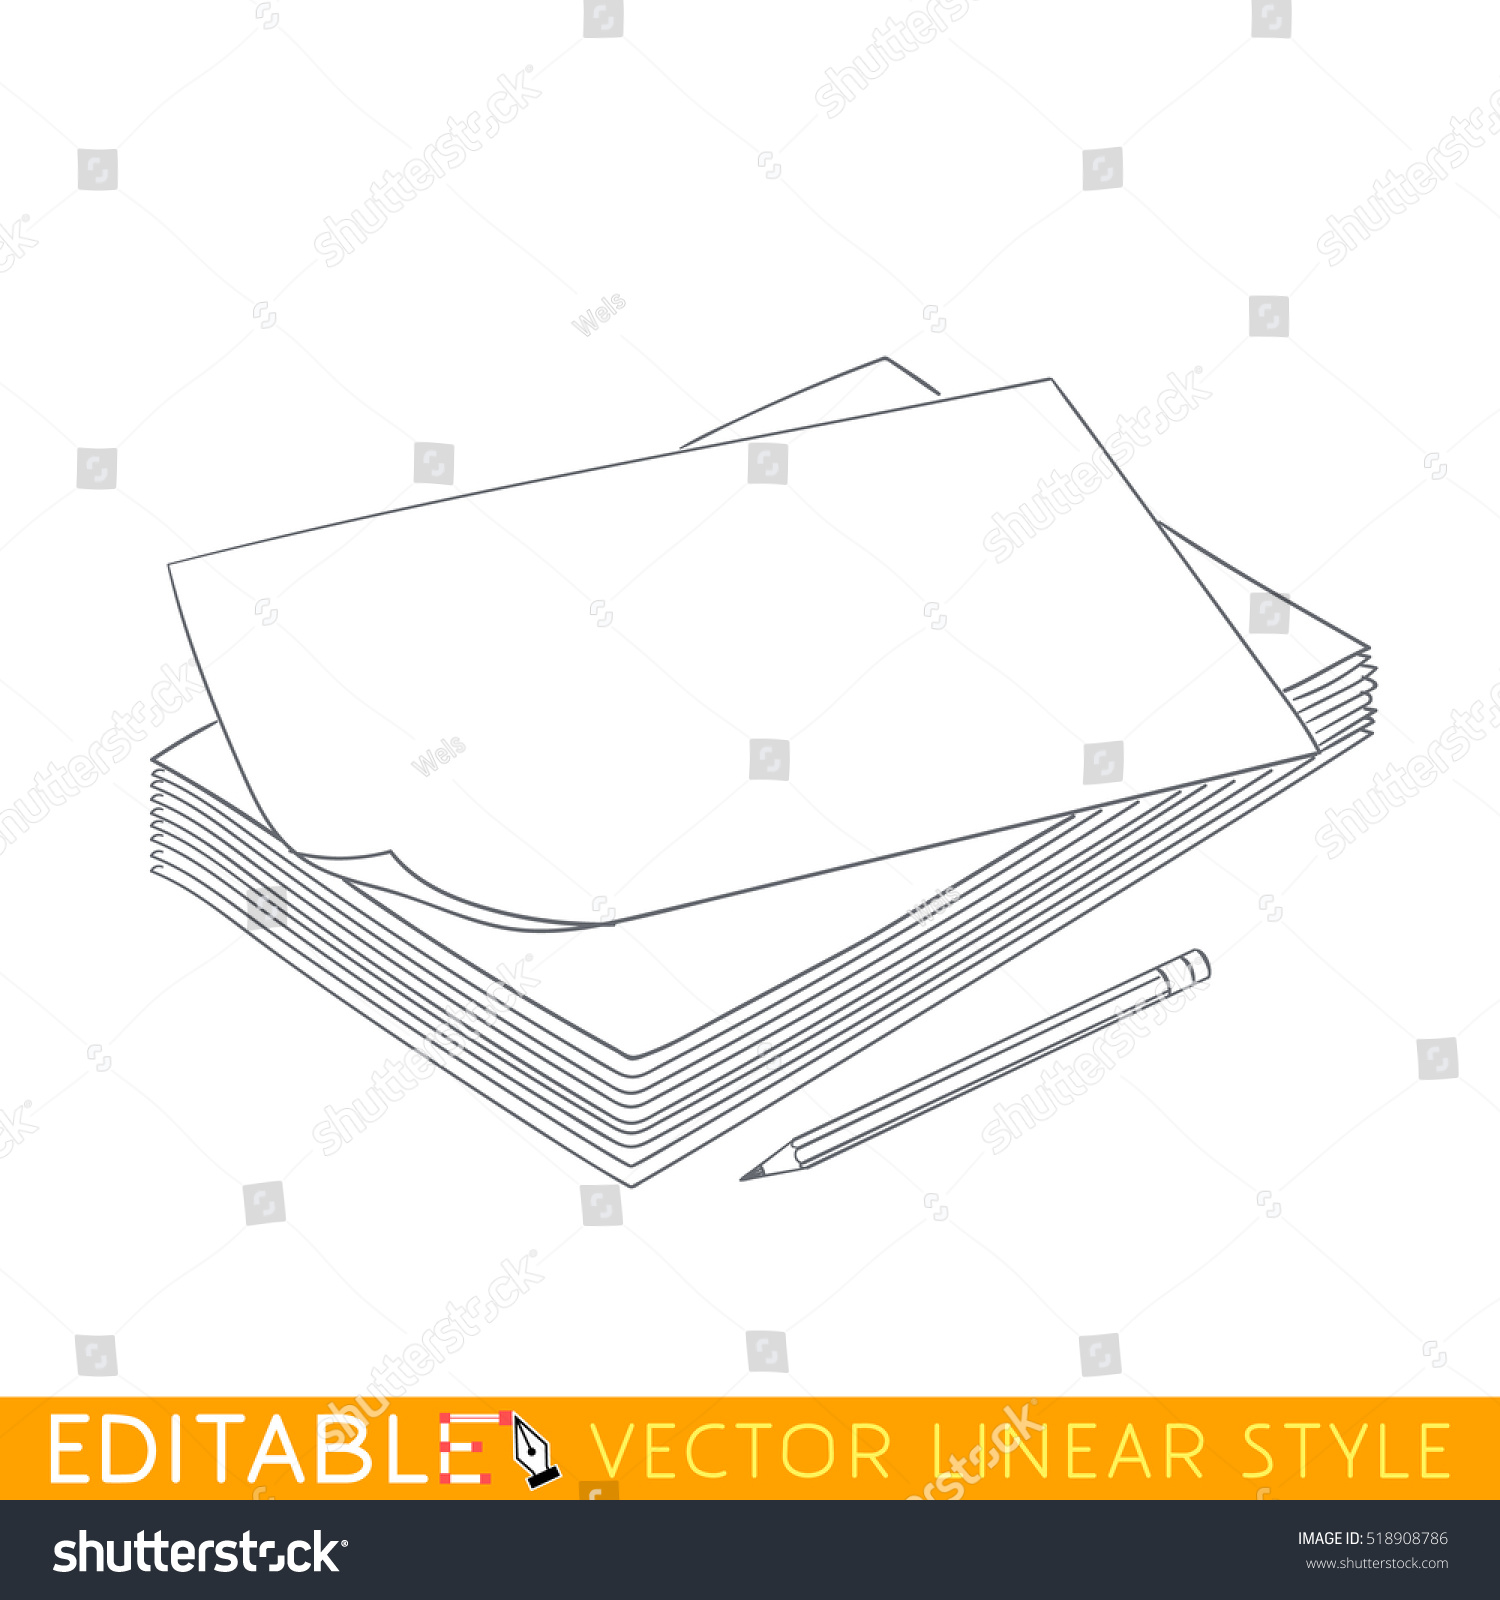 stack blank paper pencil editable outline stock vector  stack of blank paper and pencil editable outline sketch stock vector illustration